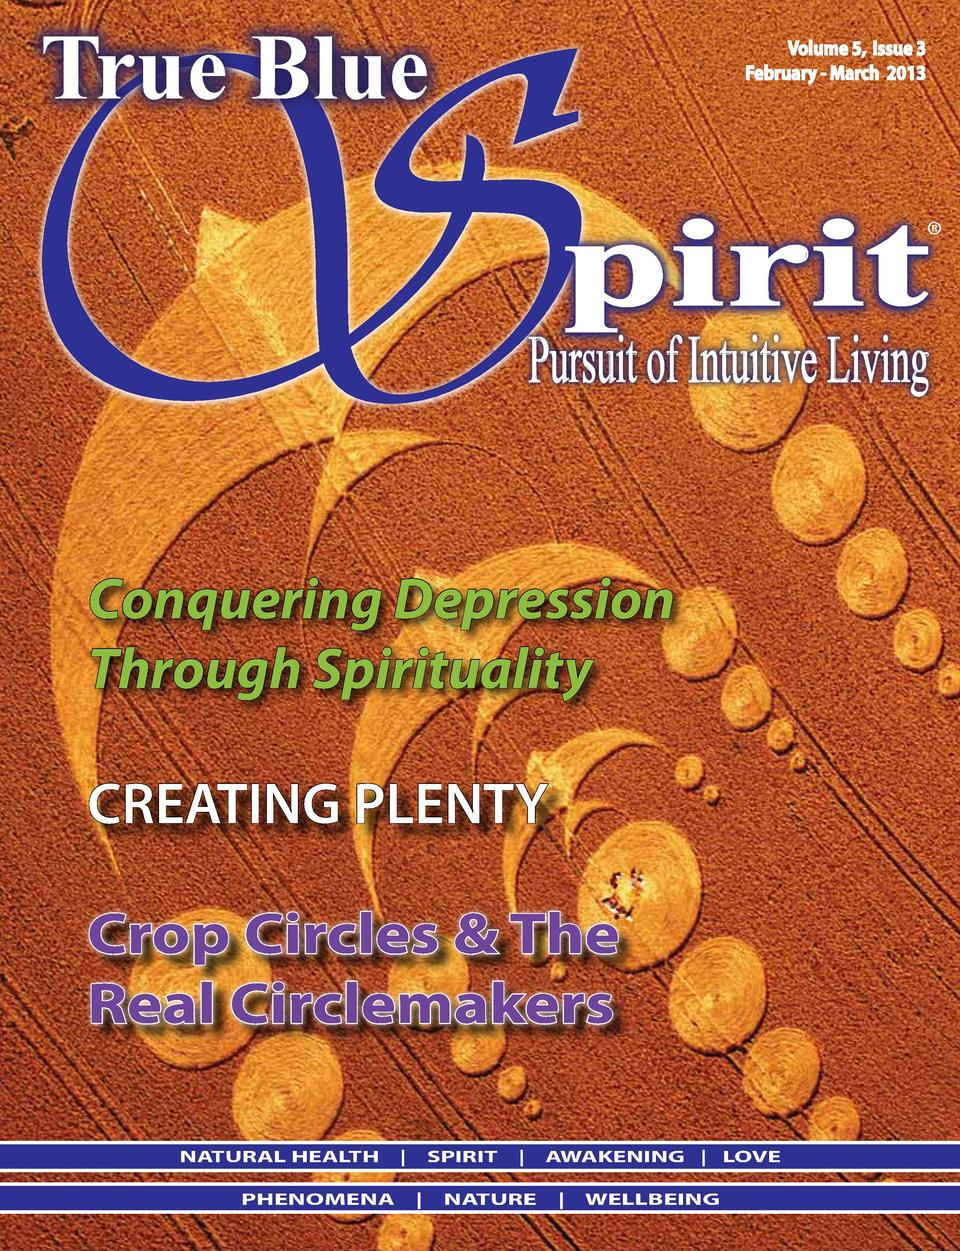 S True Blue  Volume 5, Issue 3 February - March 2013  pirit      Pursuit of Intuitive Living  Conquering Depression Throug...